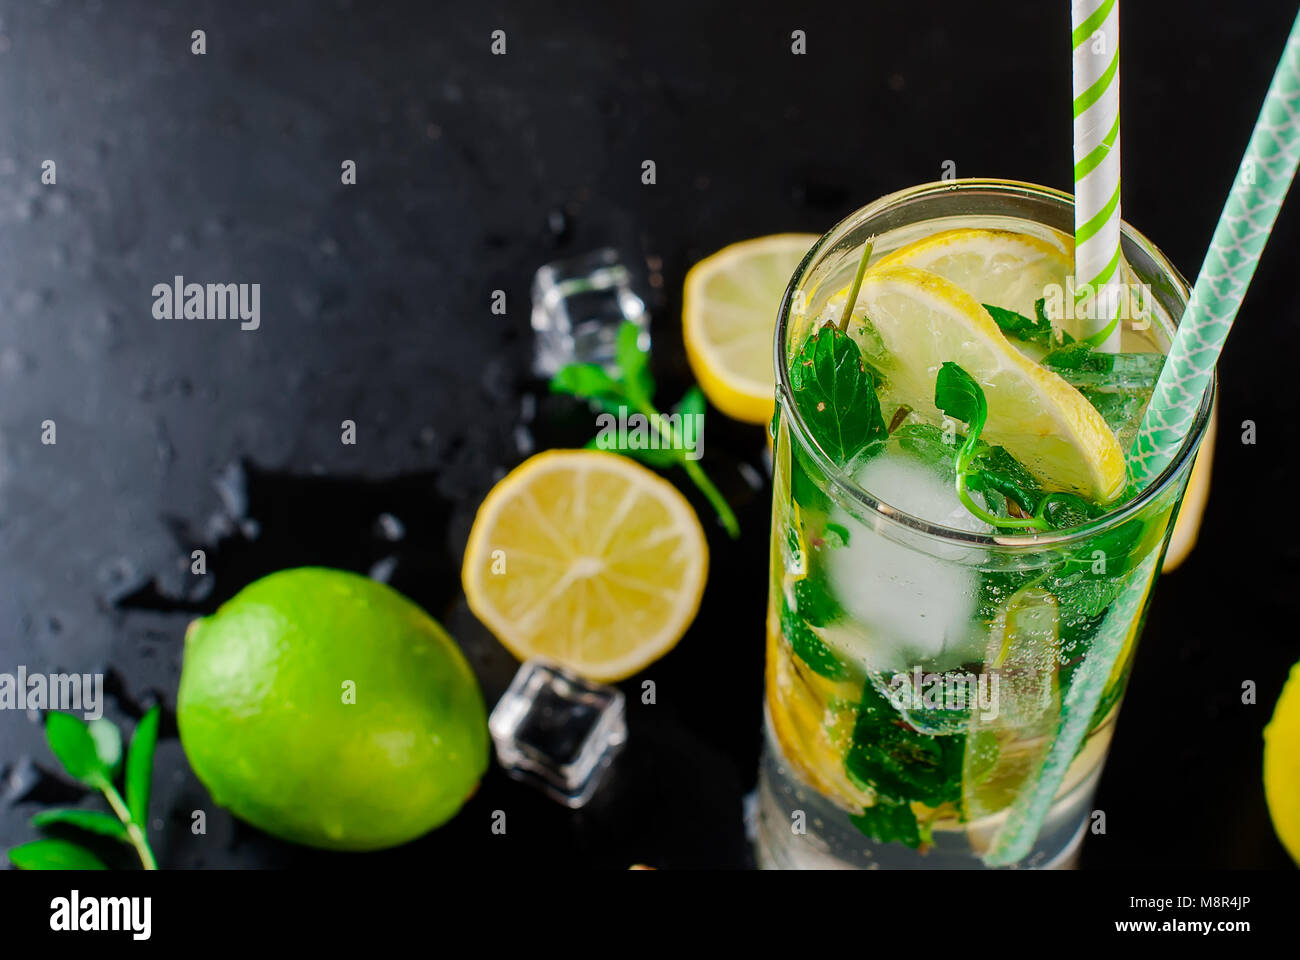 Top view of mojito cocktail, ice cubes and  cocktail ingredients on black slate board, cocktail drinks concept - Stock Image